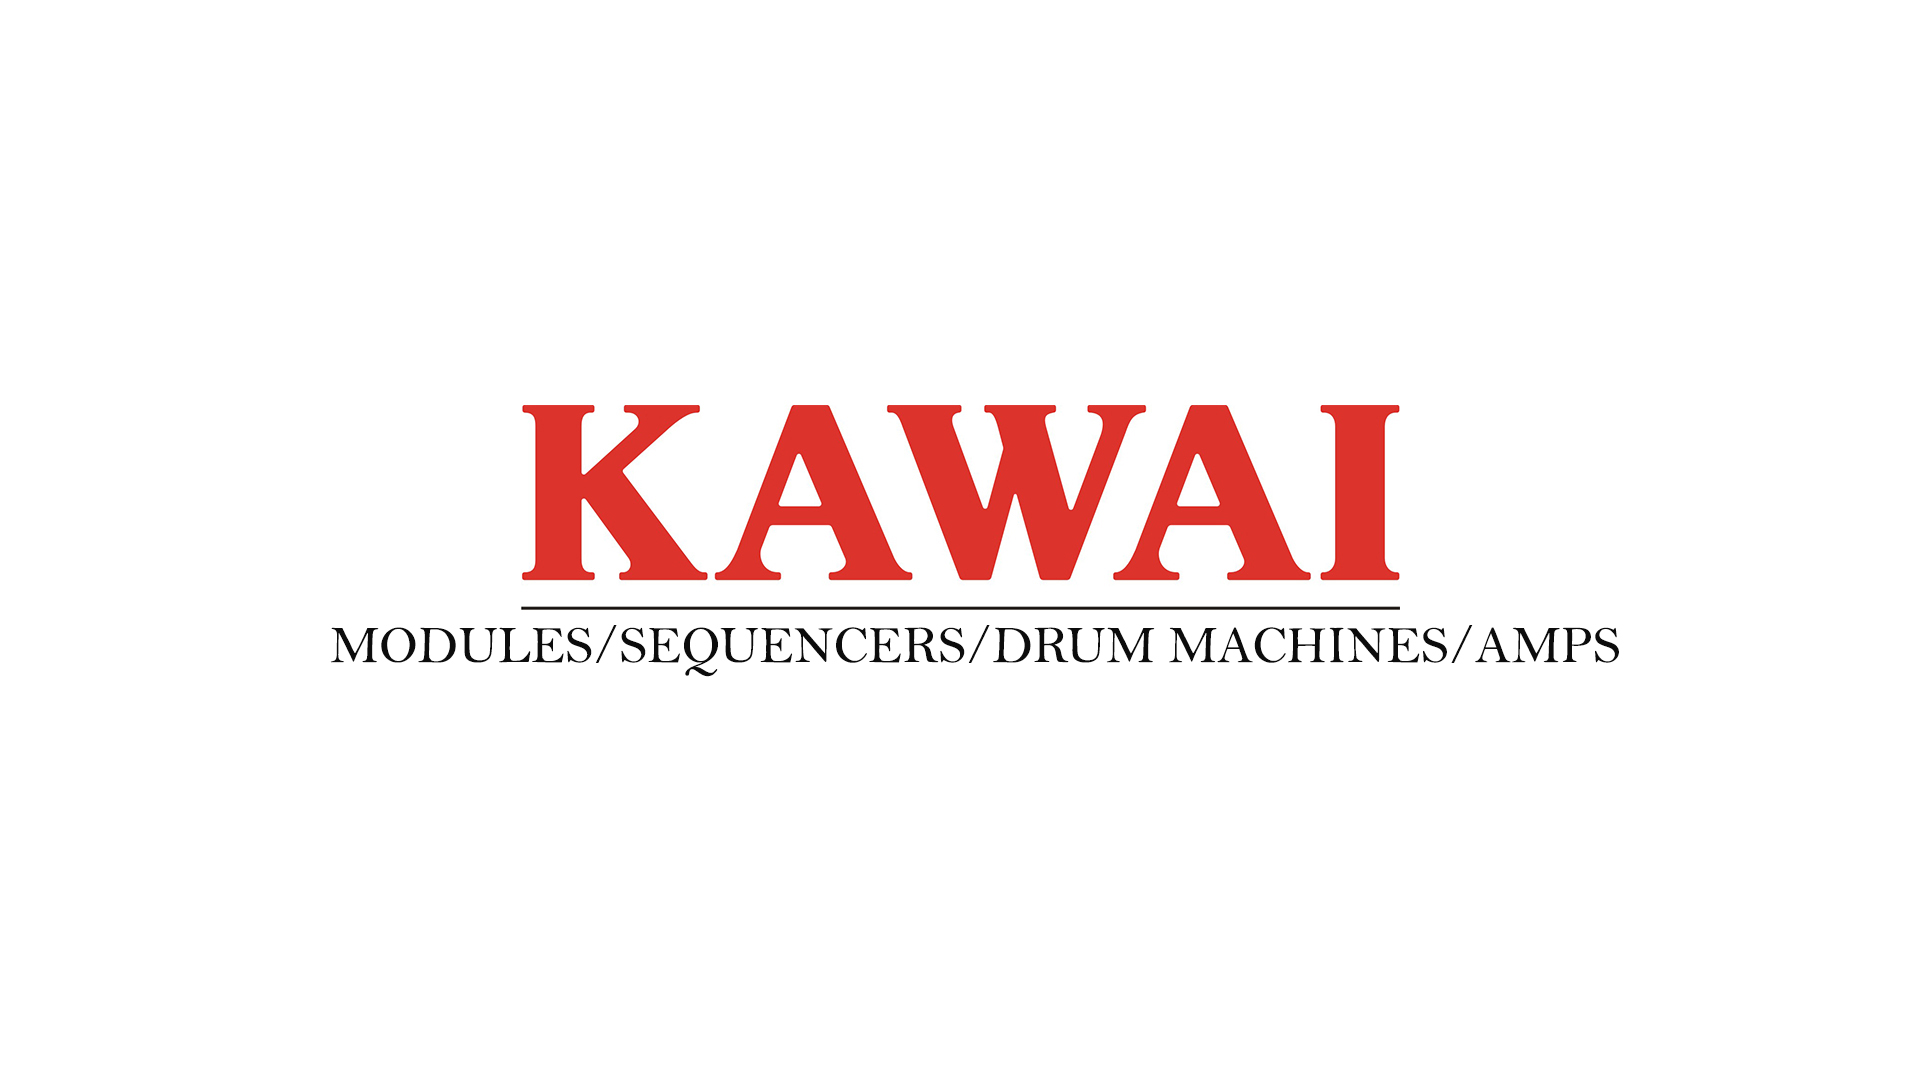 Kawai Sound Modules,Sequencers,Drum Machines,Amps Owner's Manuals